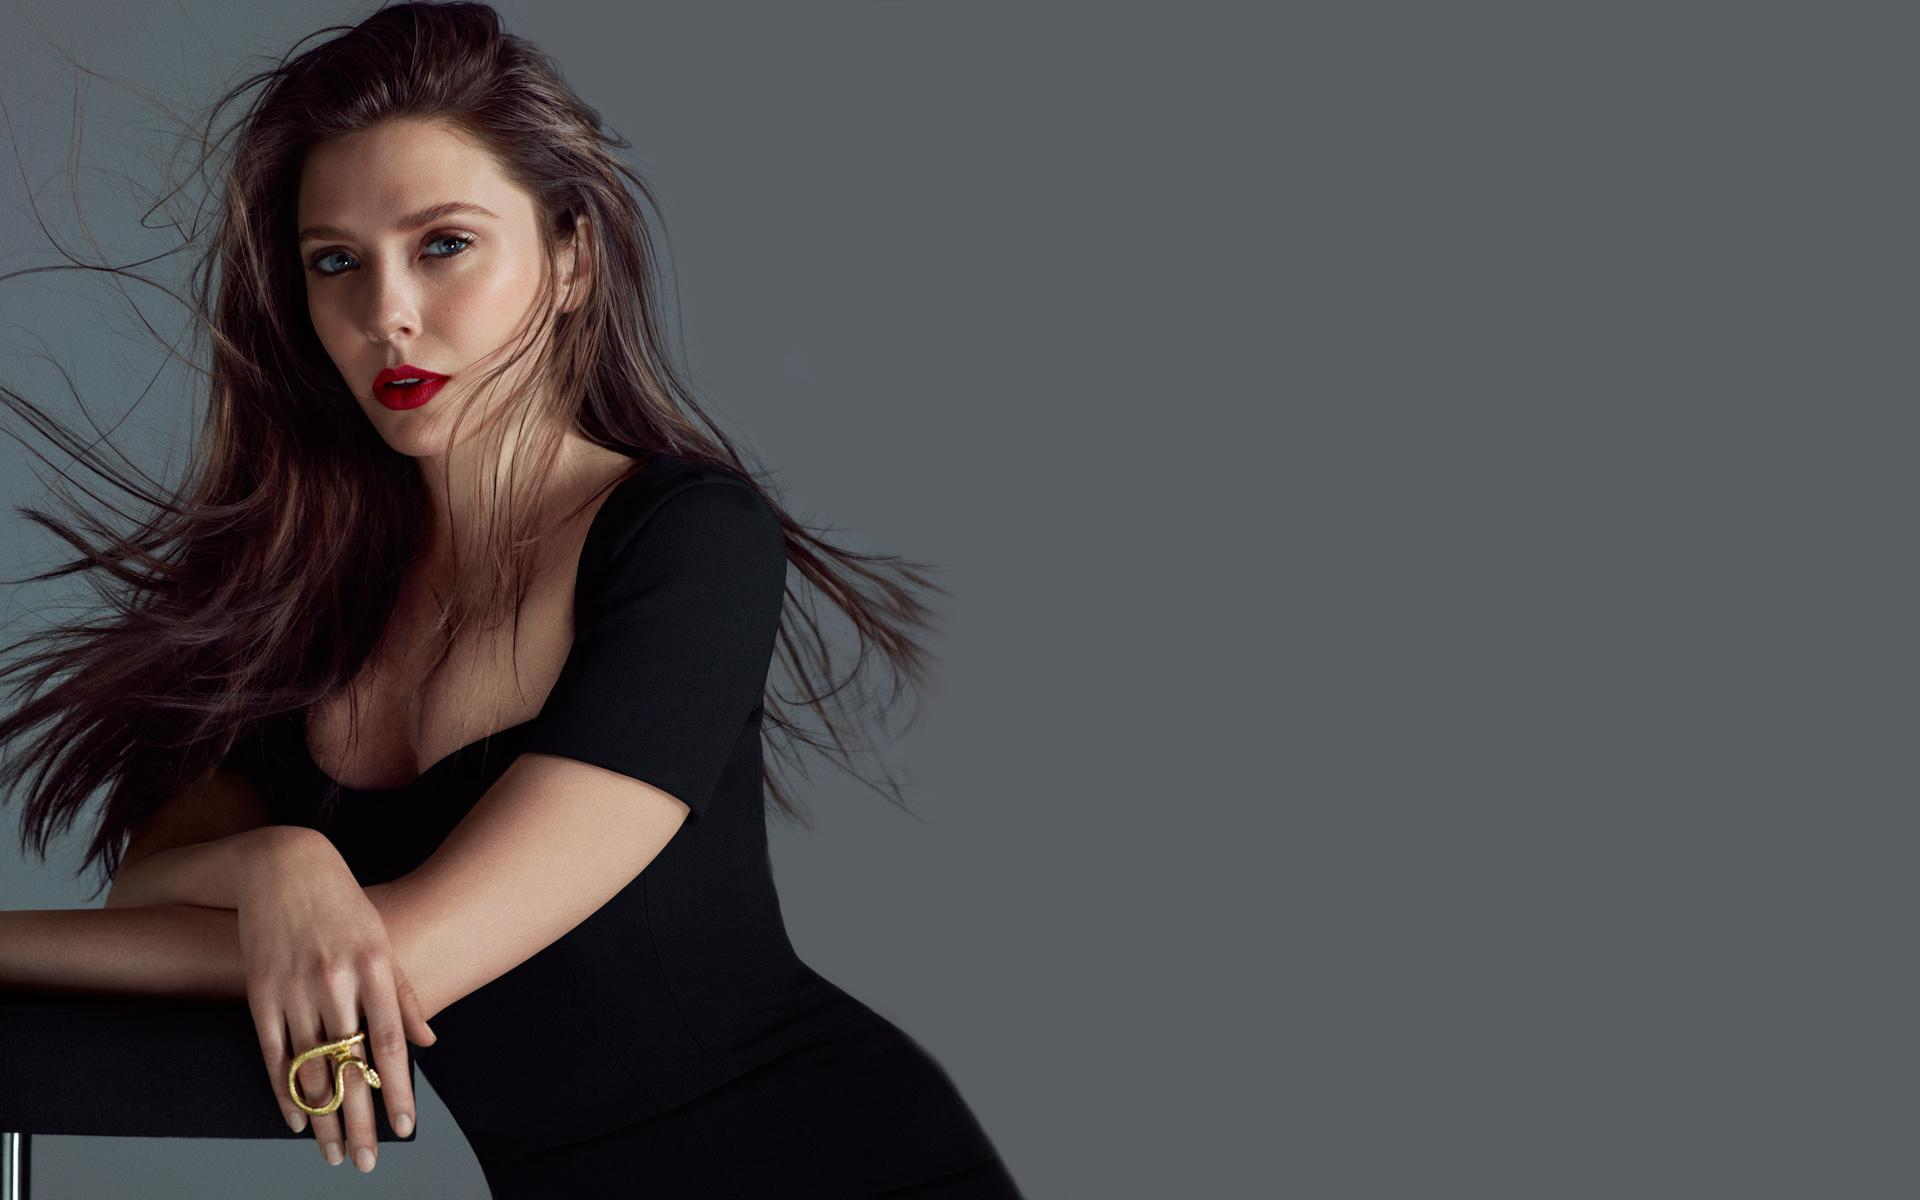 Elizabeth Olsen Wallpaper HD Download 1920x1200